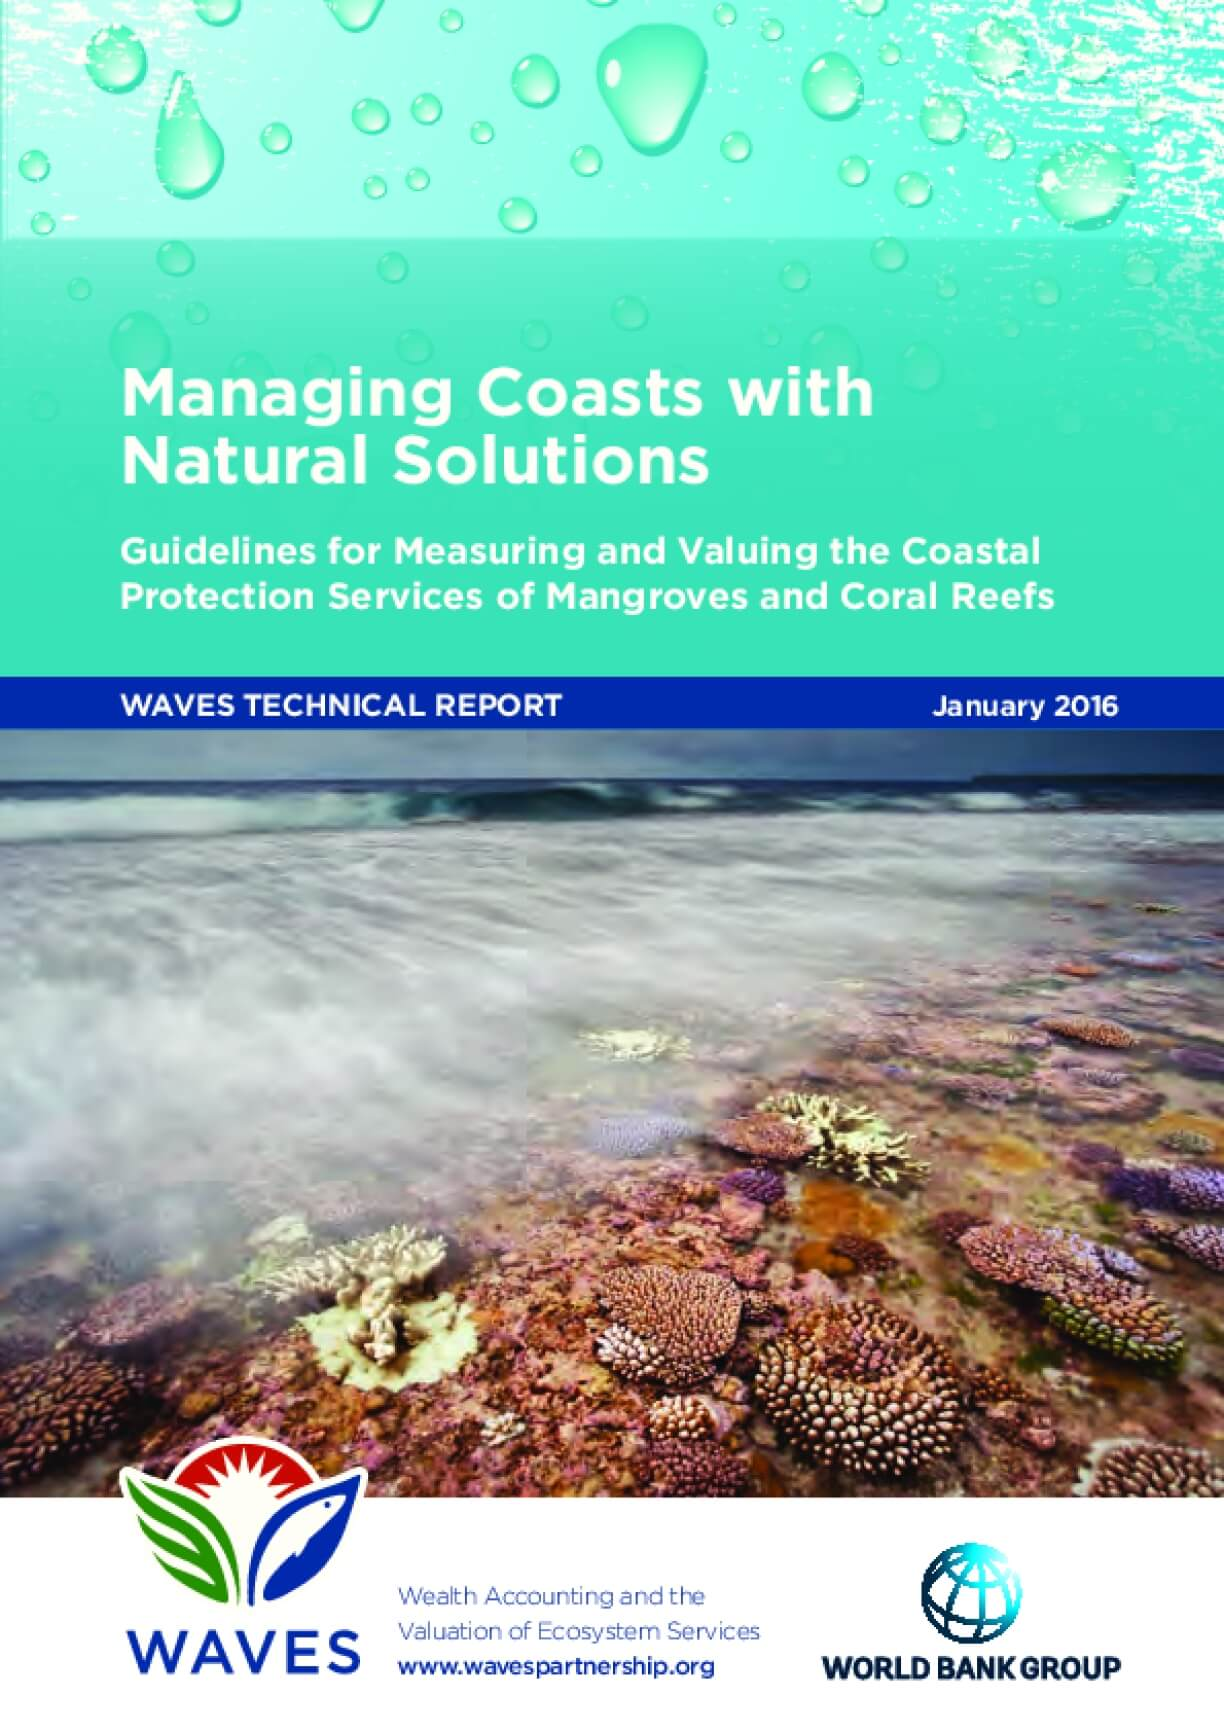 Measuring and Valuing the Services of Mangroves and Coral Reefs